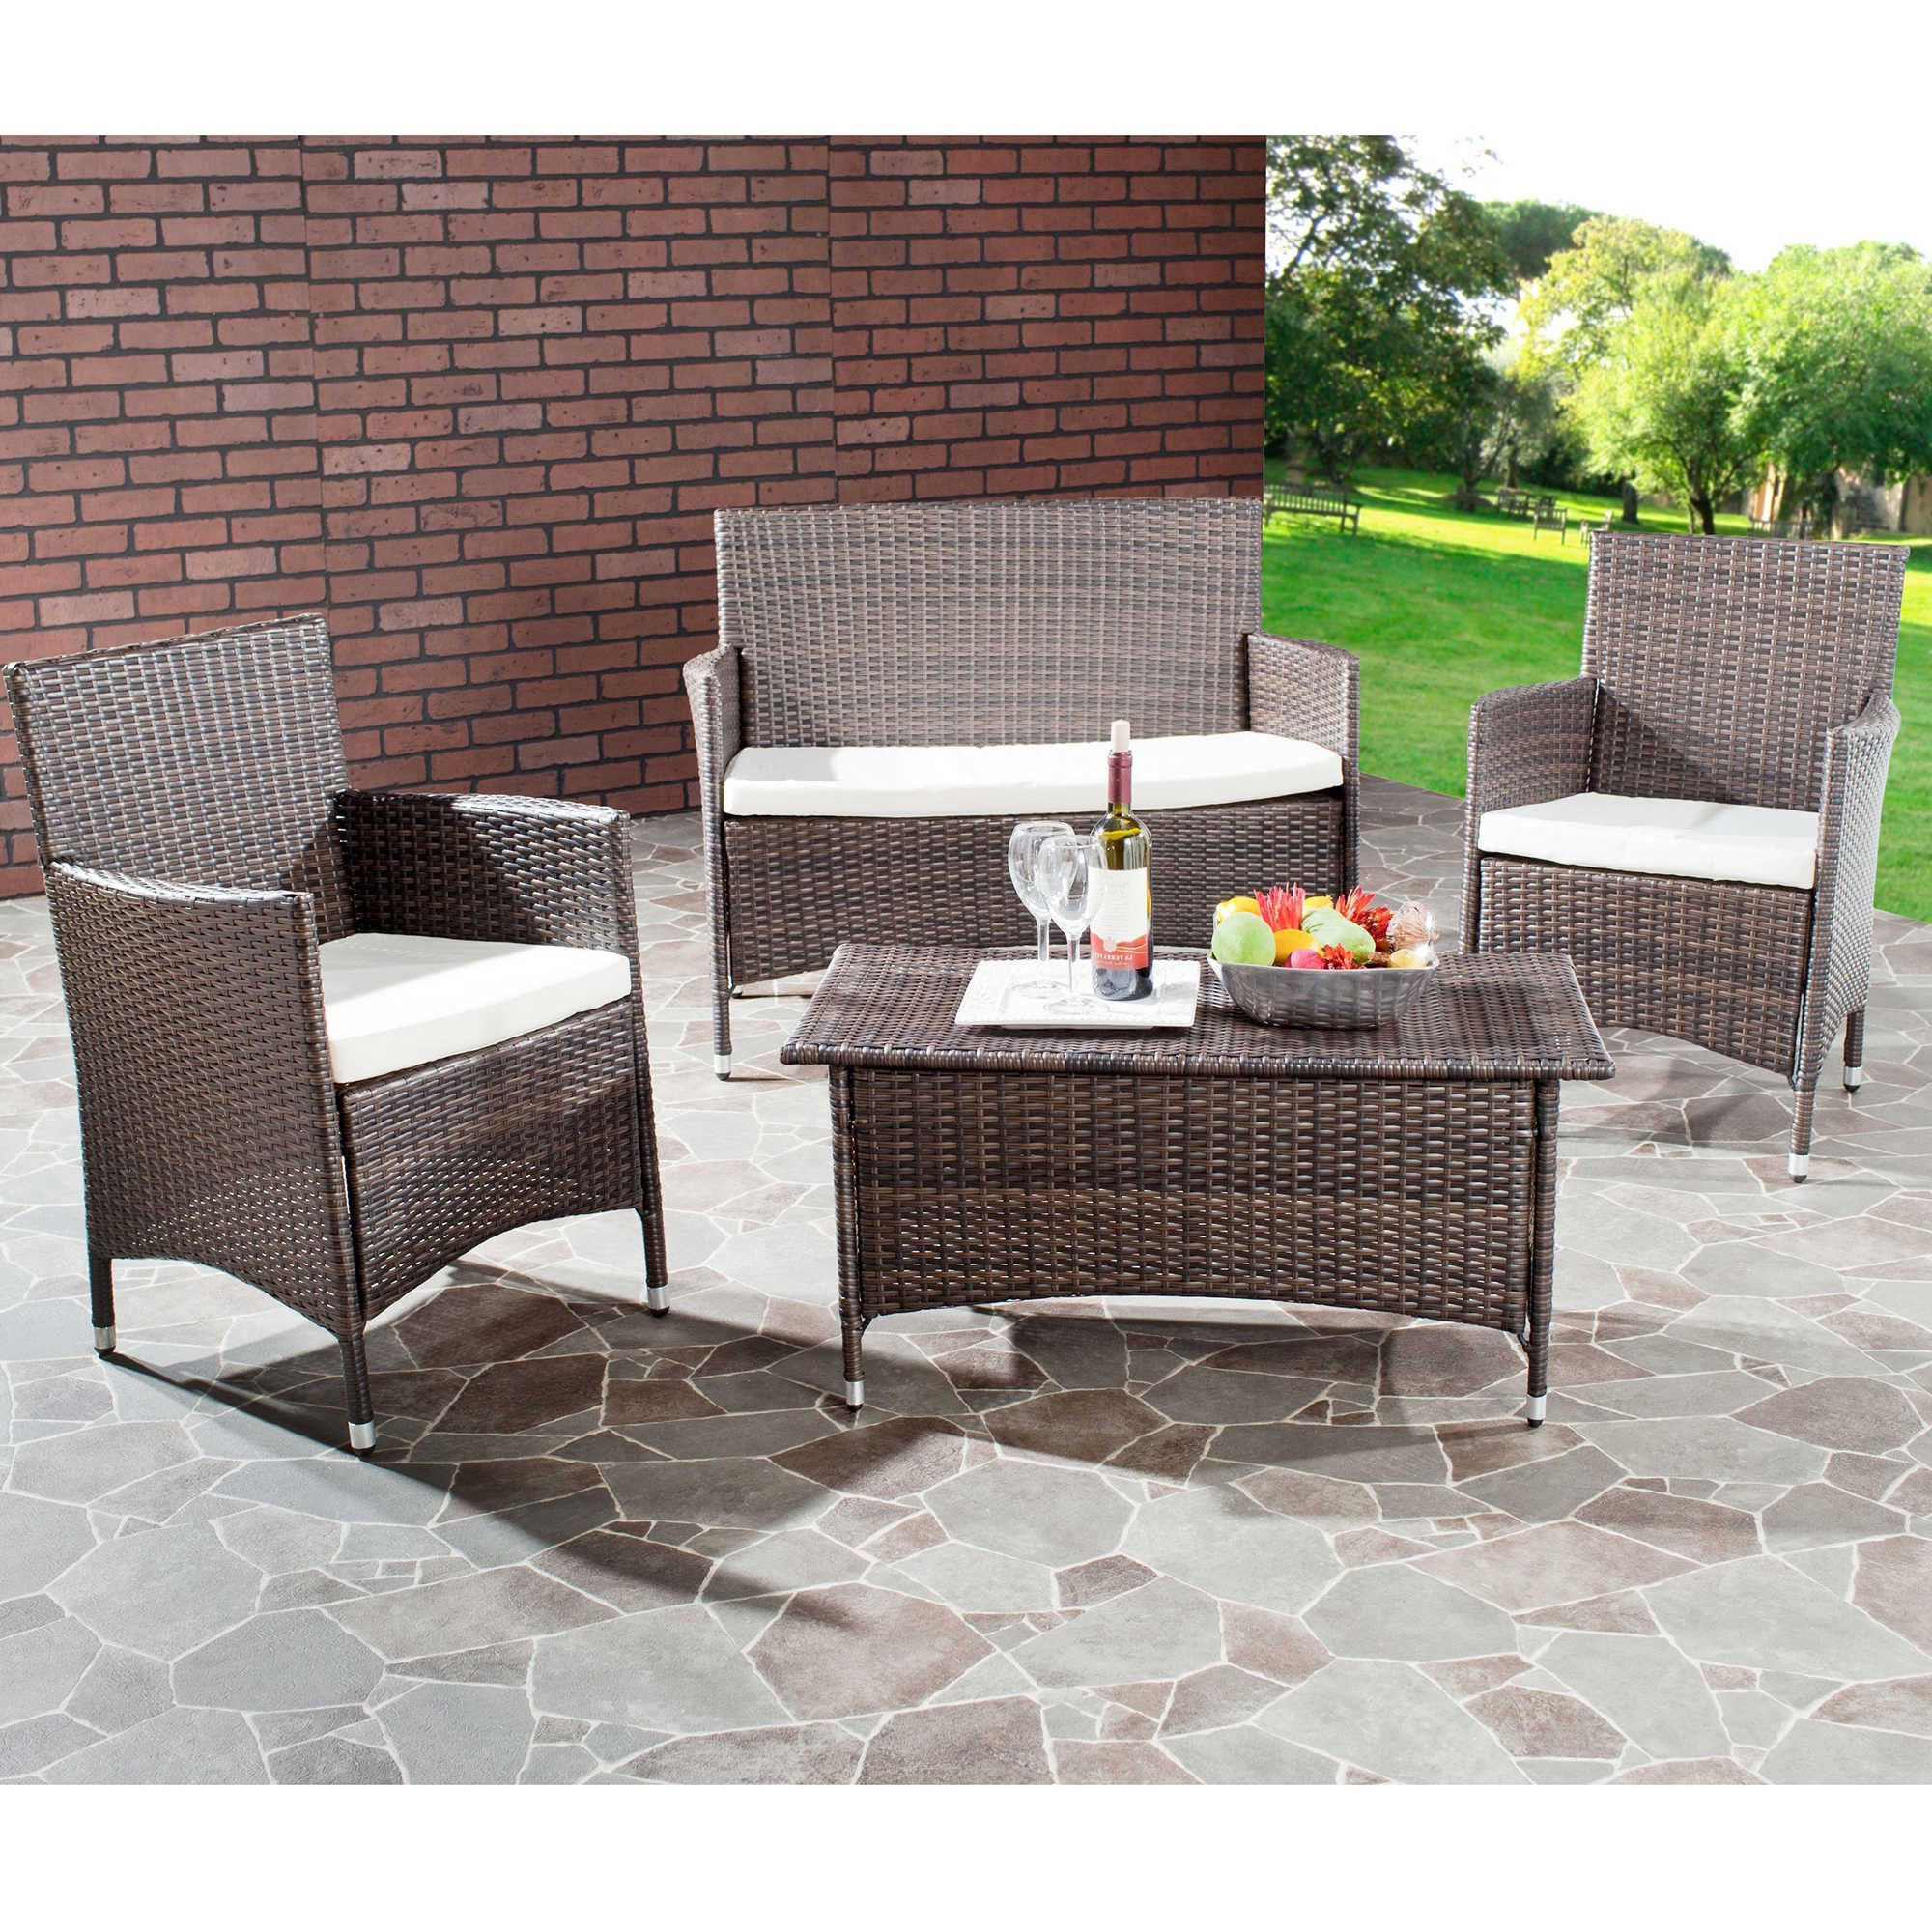 Mysterious Throughout Ostrowski Patio Sectionals With Cushions (View 10 of 25)